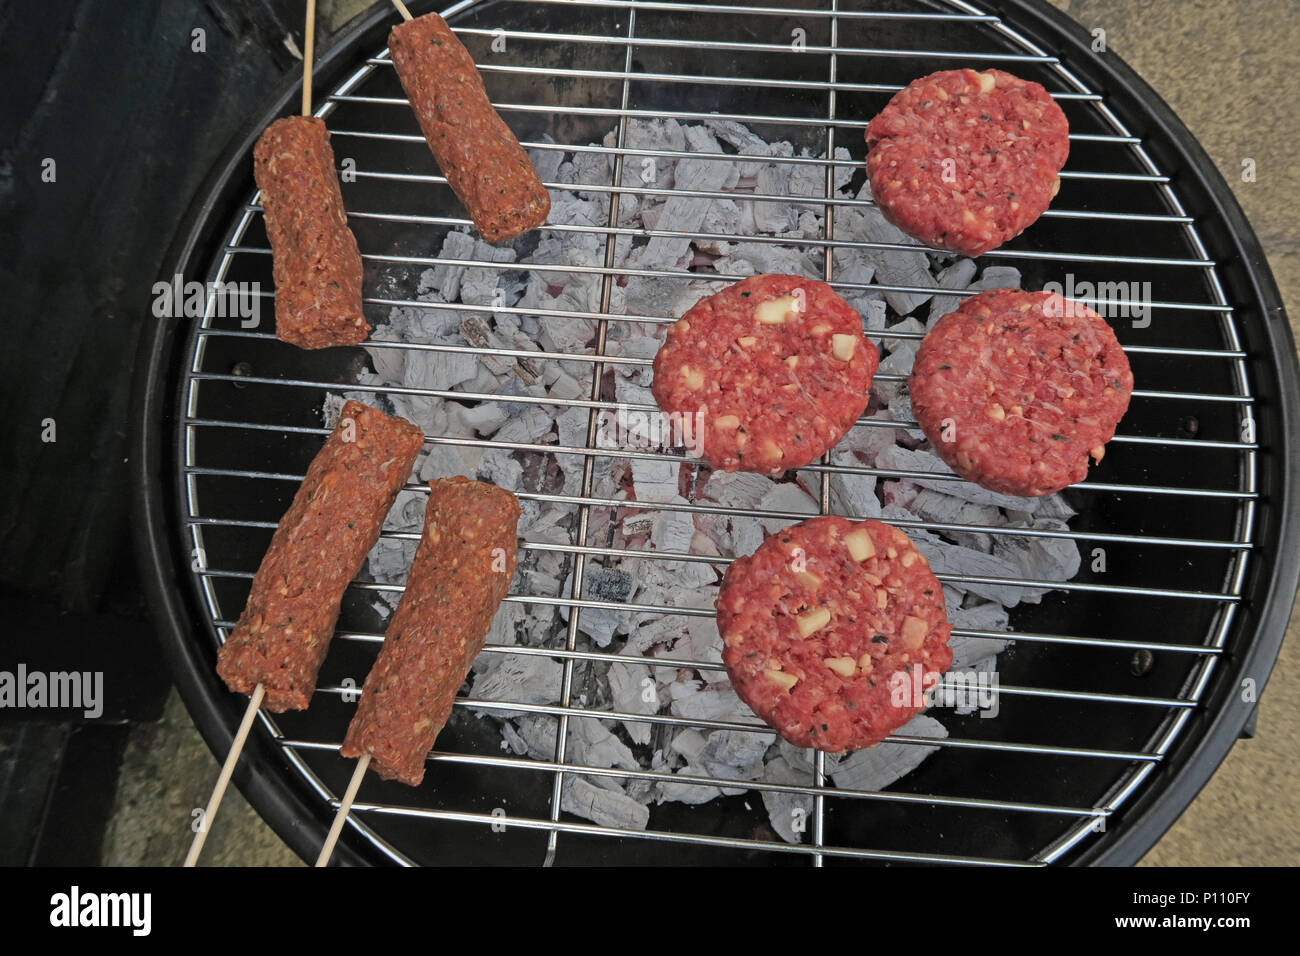 @HotpixUK,GoTonySmith,Dangers of food poisoning,raw meat,raw,meats,food poisoning danger,from summer BBQ meat,Sausages,beef burgers,raw burger,raw pork,raw beef,Kebabs,under-cooked or raw,well cooked,undercooked,under-cooked,hazard,care,hazardous,charcoal,charcoals,home barbecue,prepare food correctly,avoid contamination,cook food properly,meat,cooking,meat on griddle,raw kebabs,Dangers of the garden barbecue,bacteria,cross-contamination,dangers,cross contamination,killing harmful bacteria,minced meat products